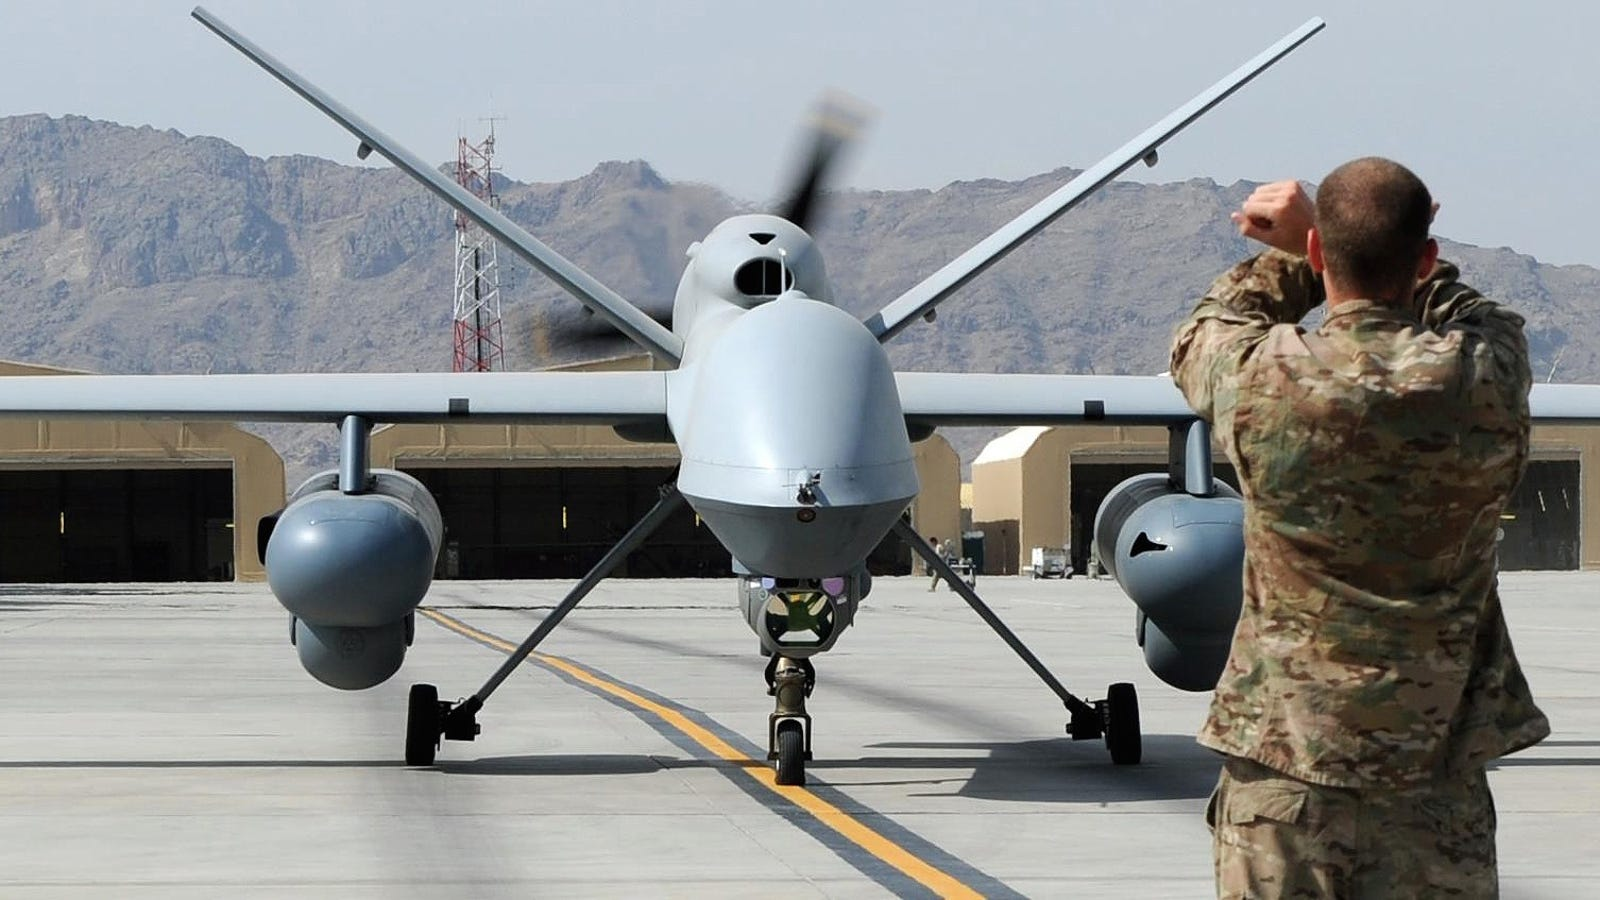 Drones In Afghanistan Have The Most Advanced Aerial